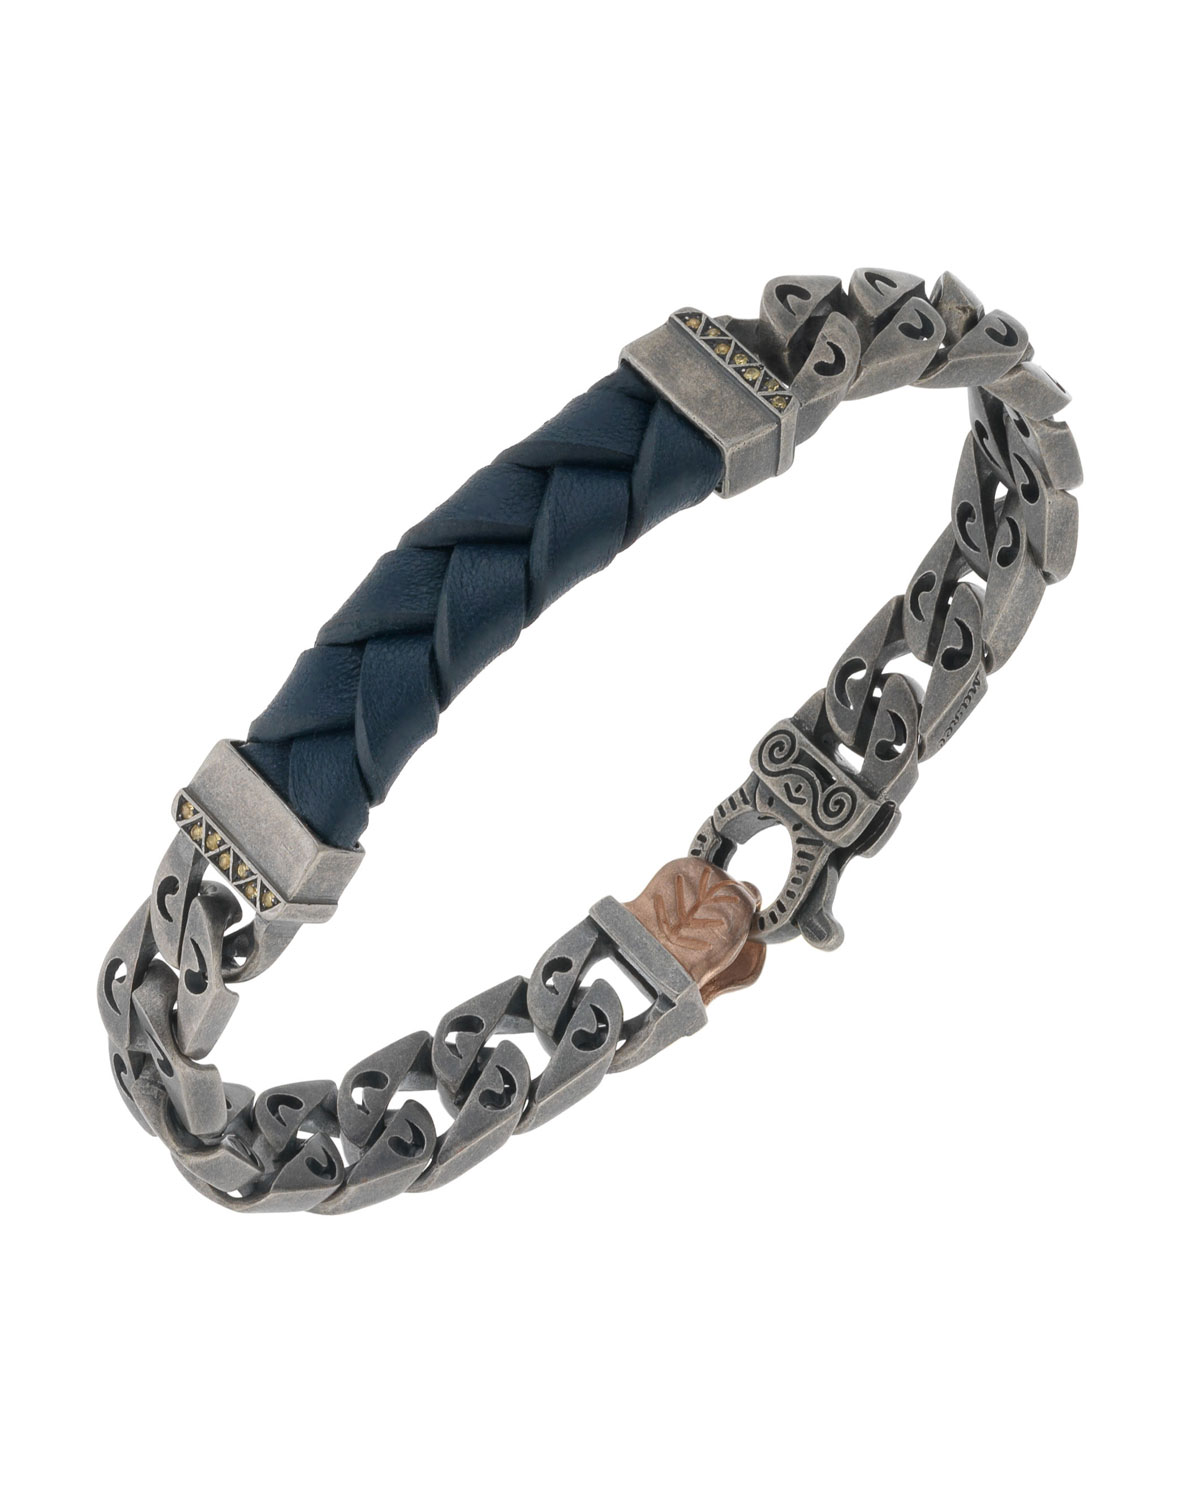 MARCO DAL MASO MEN'S WOVEN LEATHER/SILVER CHAIN BRACELET W/ 18K GOLD-PLATED CLASP, BLUE